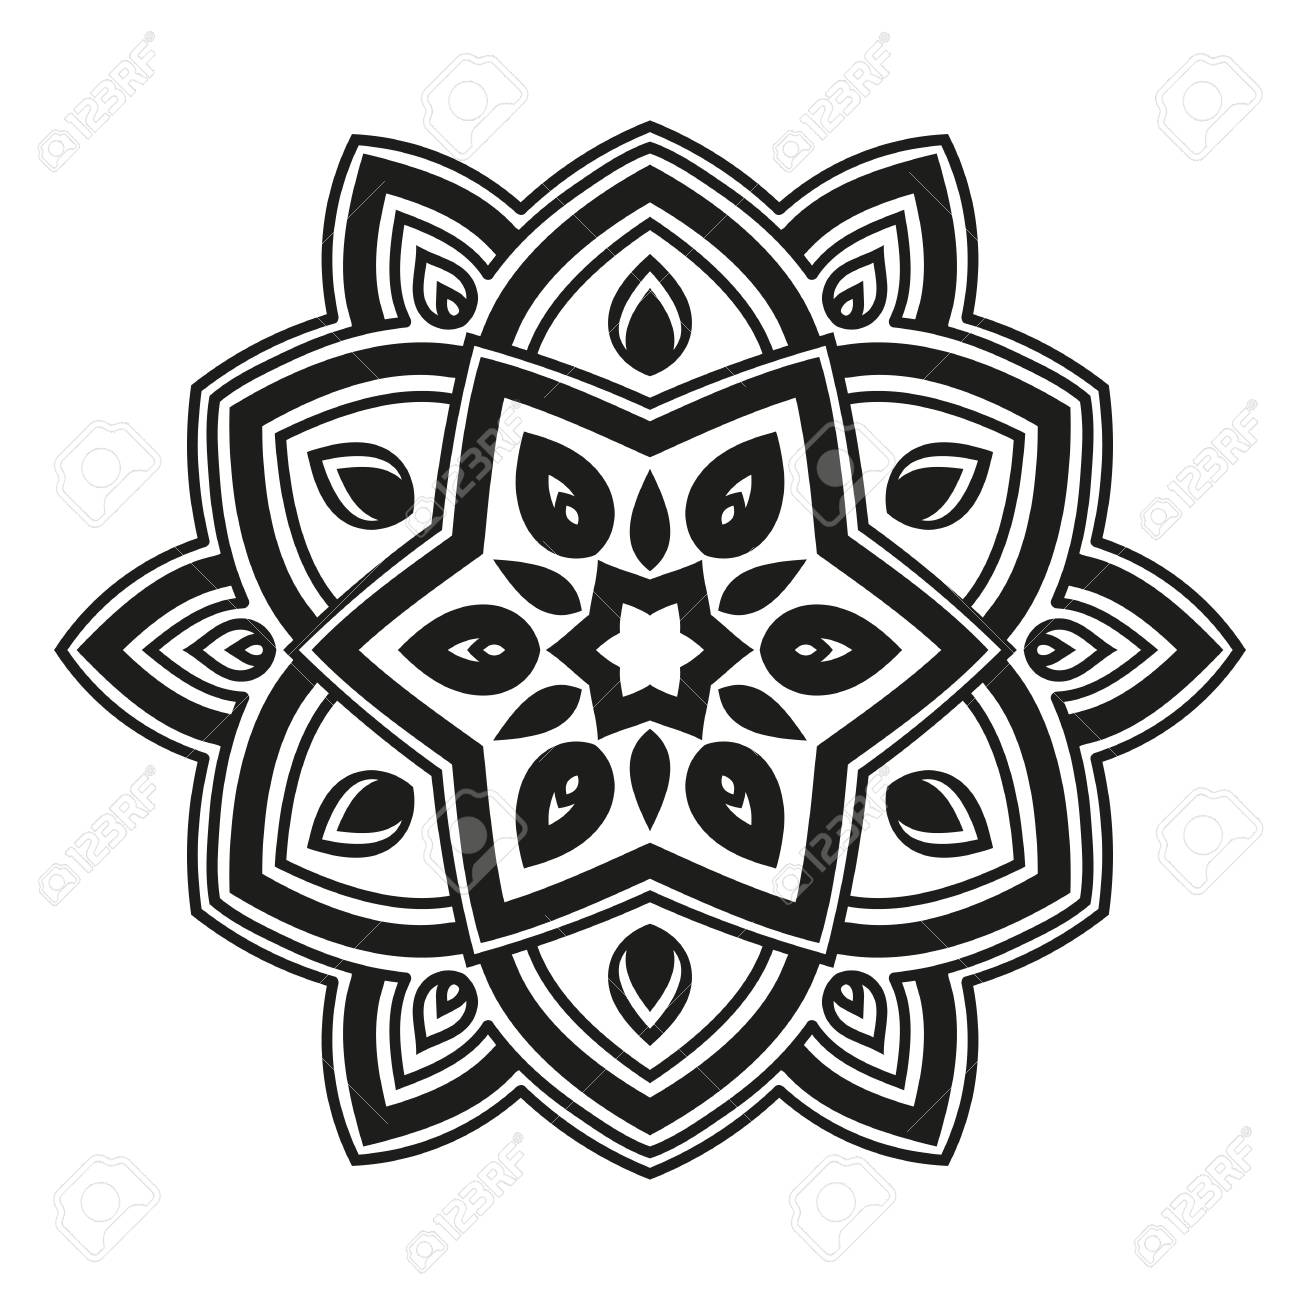 Arabesques Black And White Color. Template For Engraving, Embroidery ...